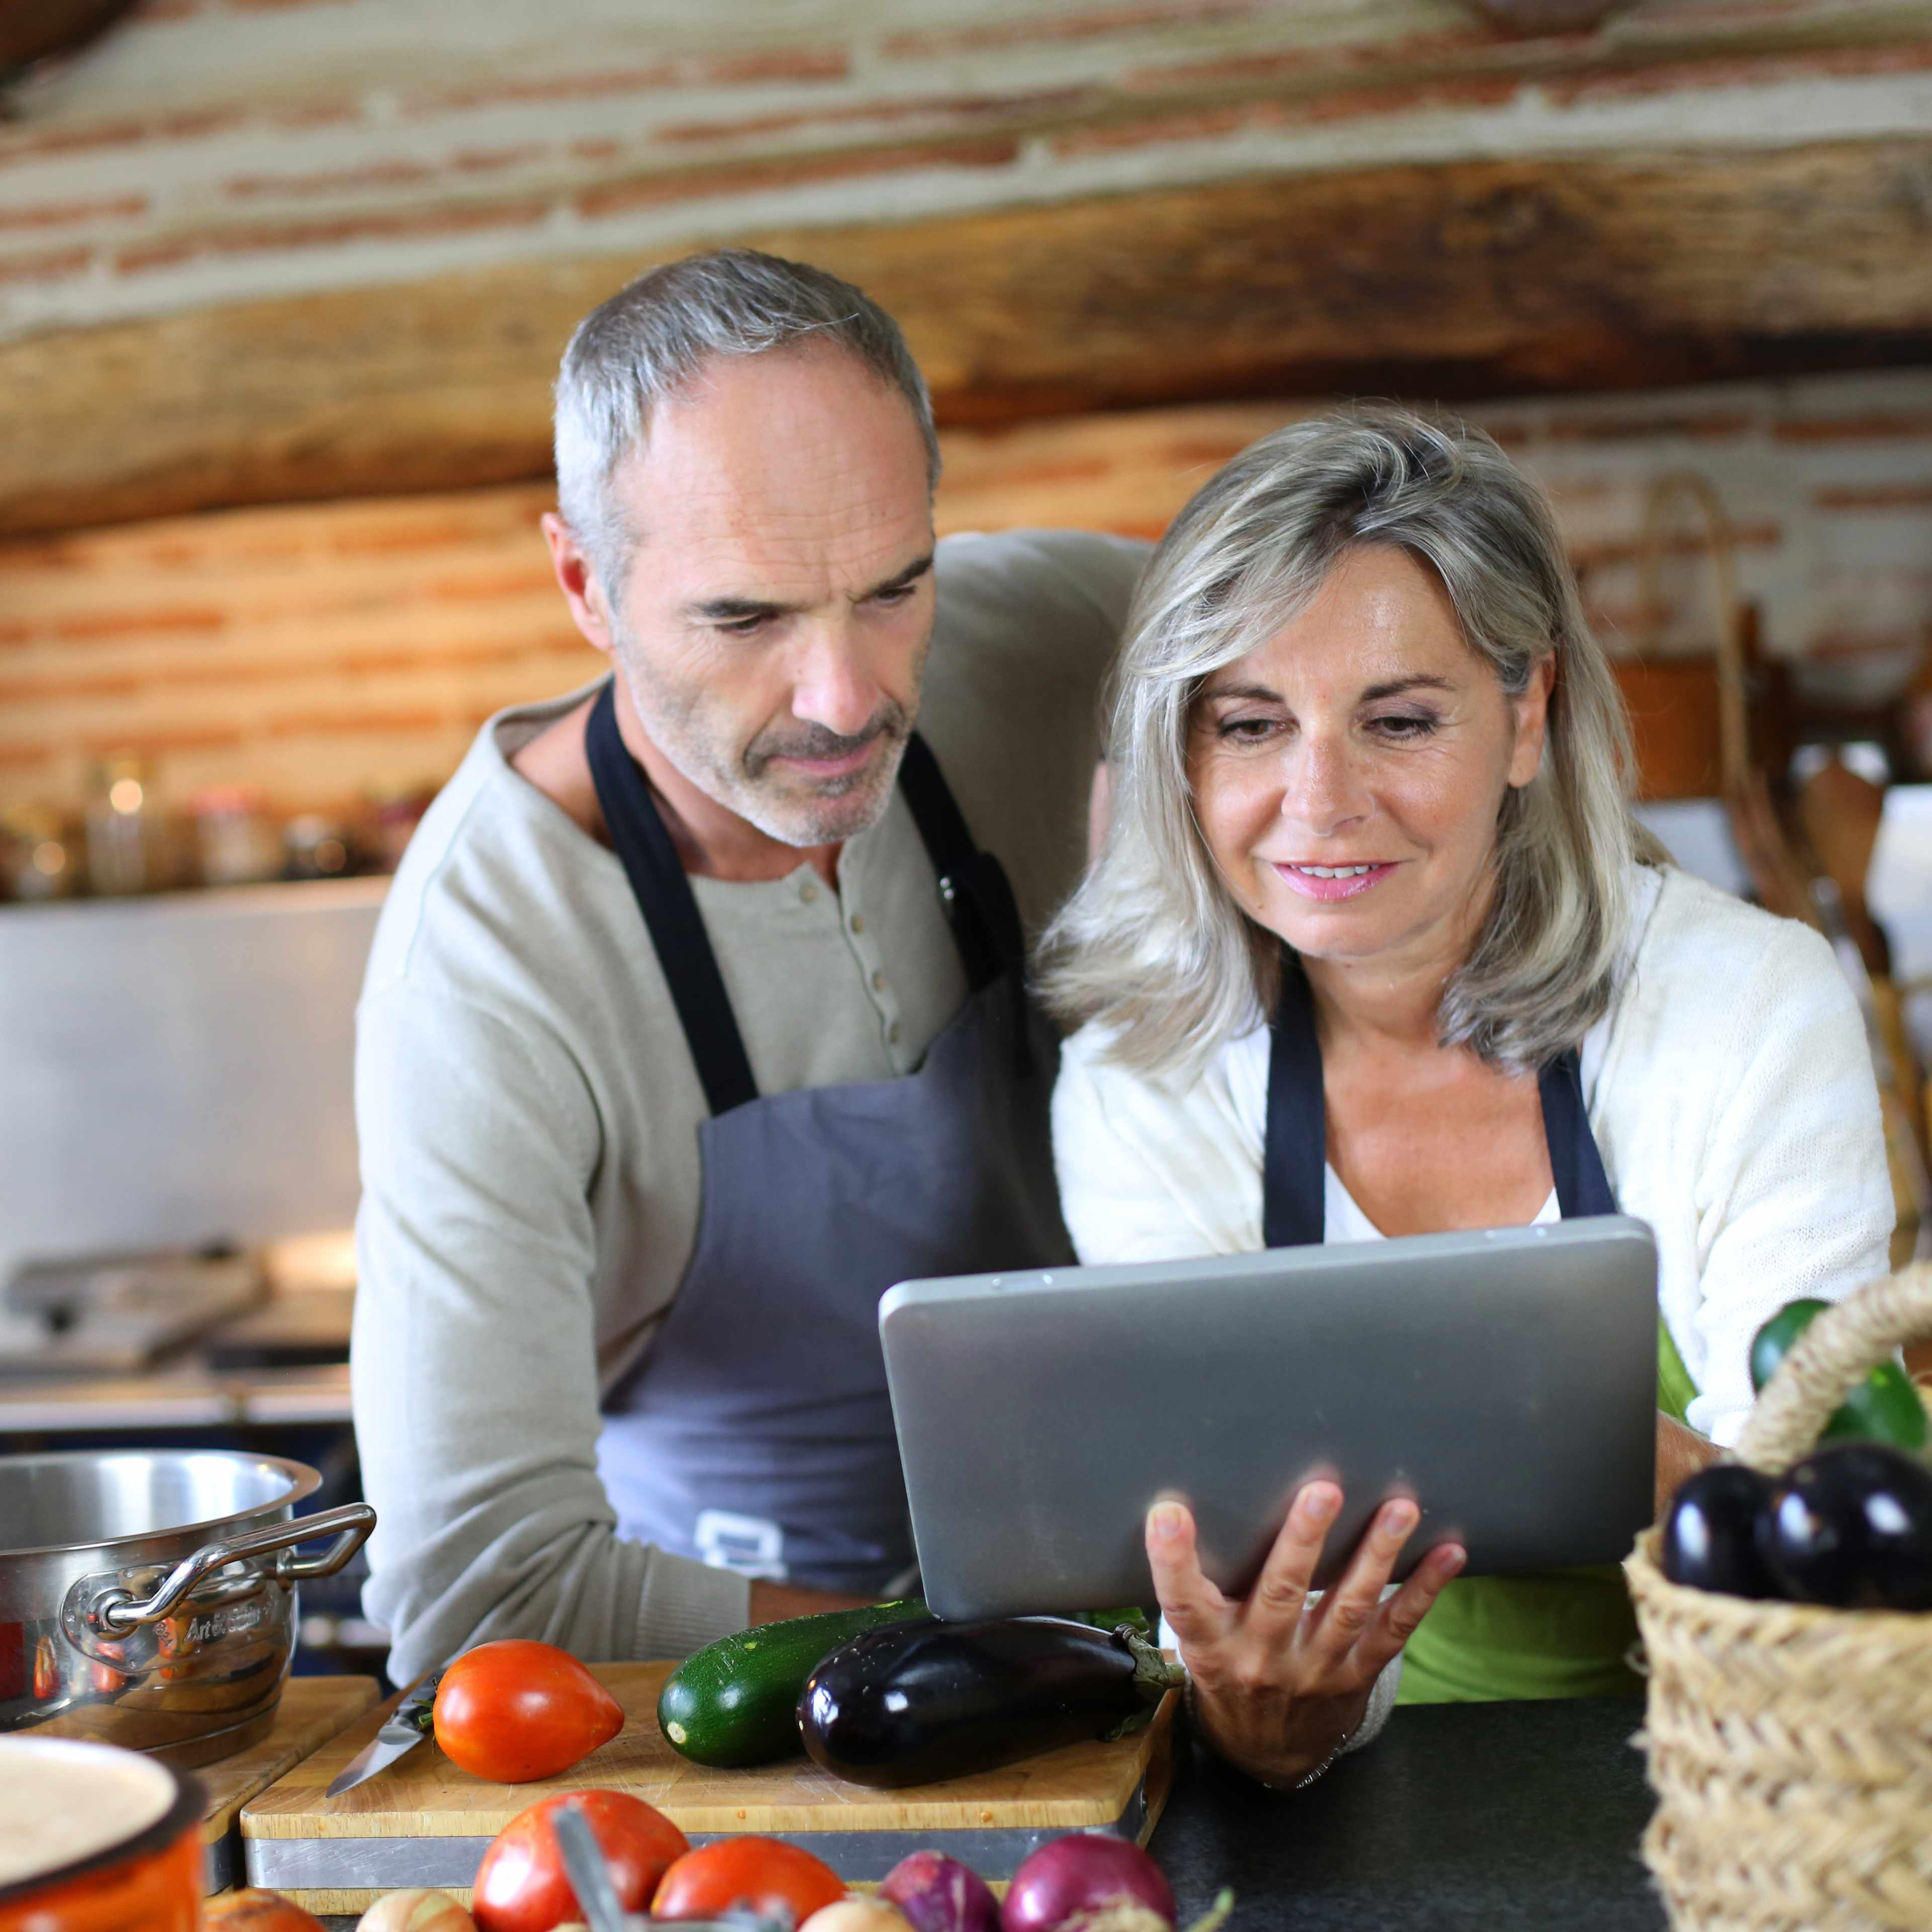 a middle-aged couple in a kitchen, looking at a laptop and preparing food